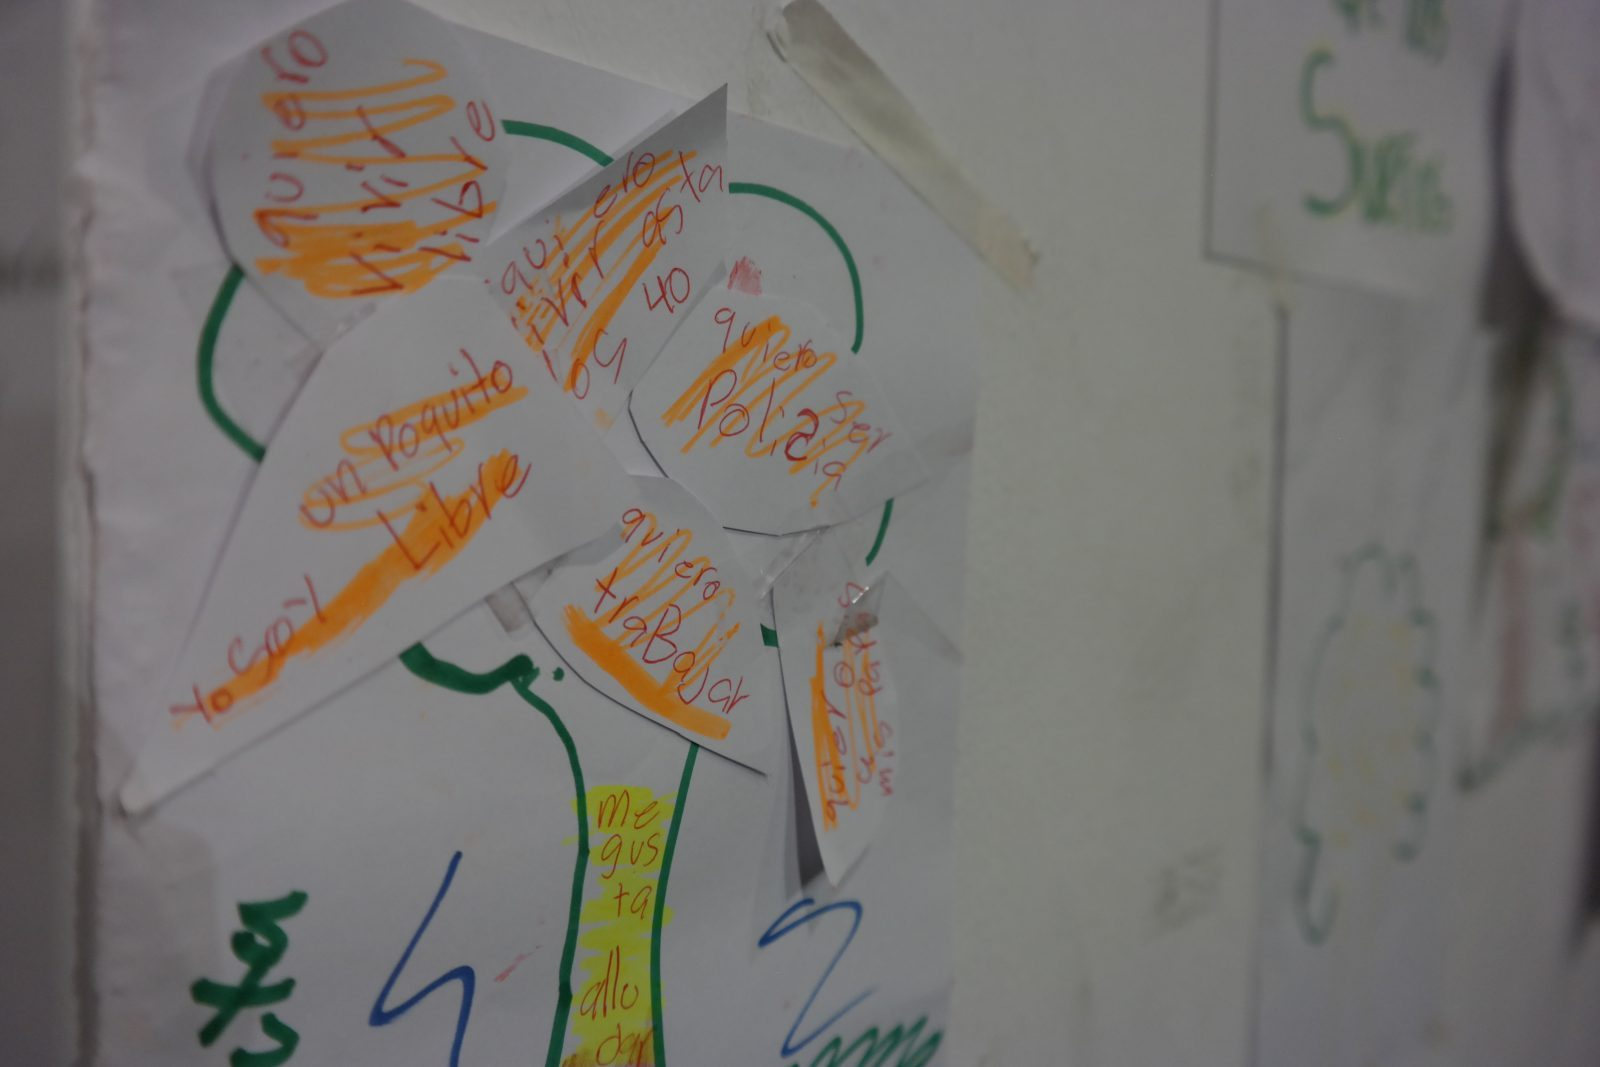 """Youth drawing with text that reads """"quiero vivir libre"""" and """"yo soy libre."""""""